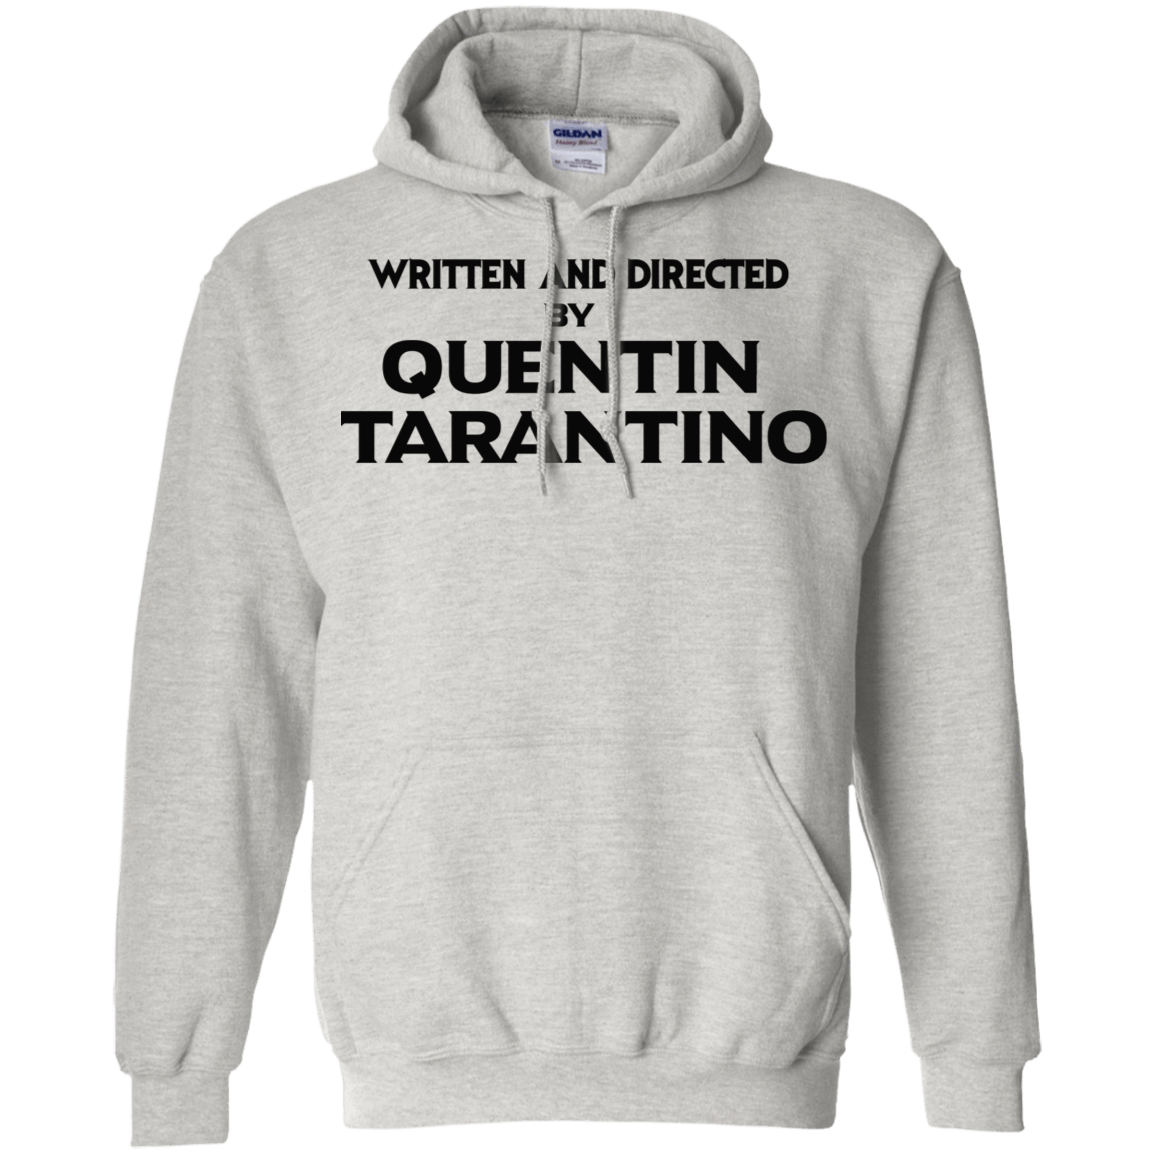 Written And Directed By Quentin Tarantino 541-4748-71739000-23071 - Tee Ript